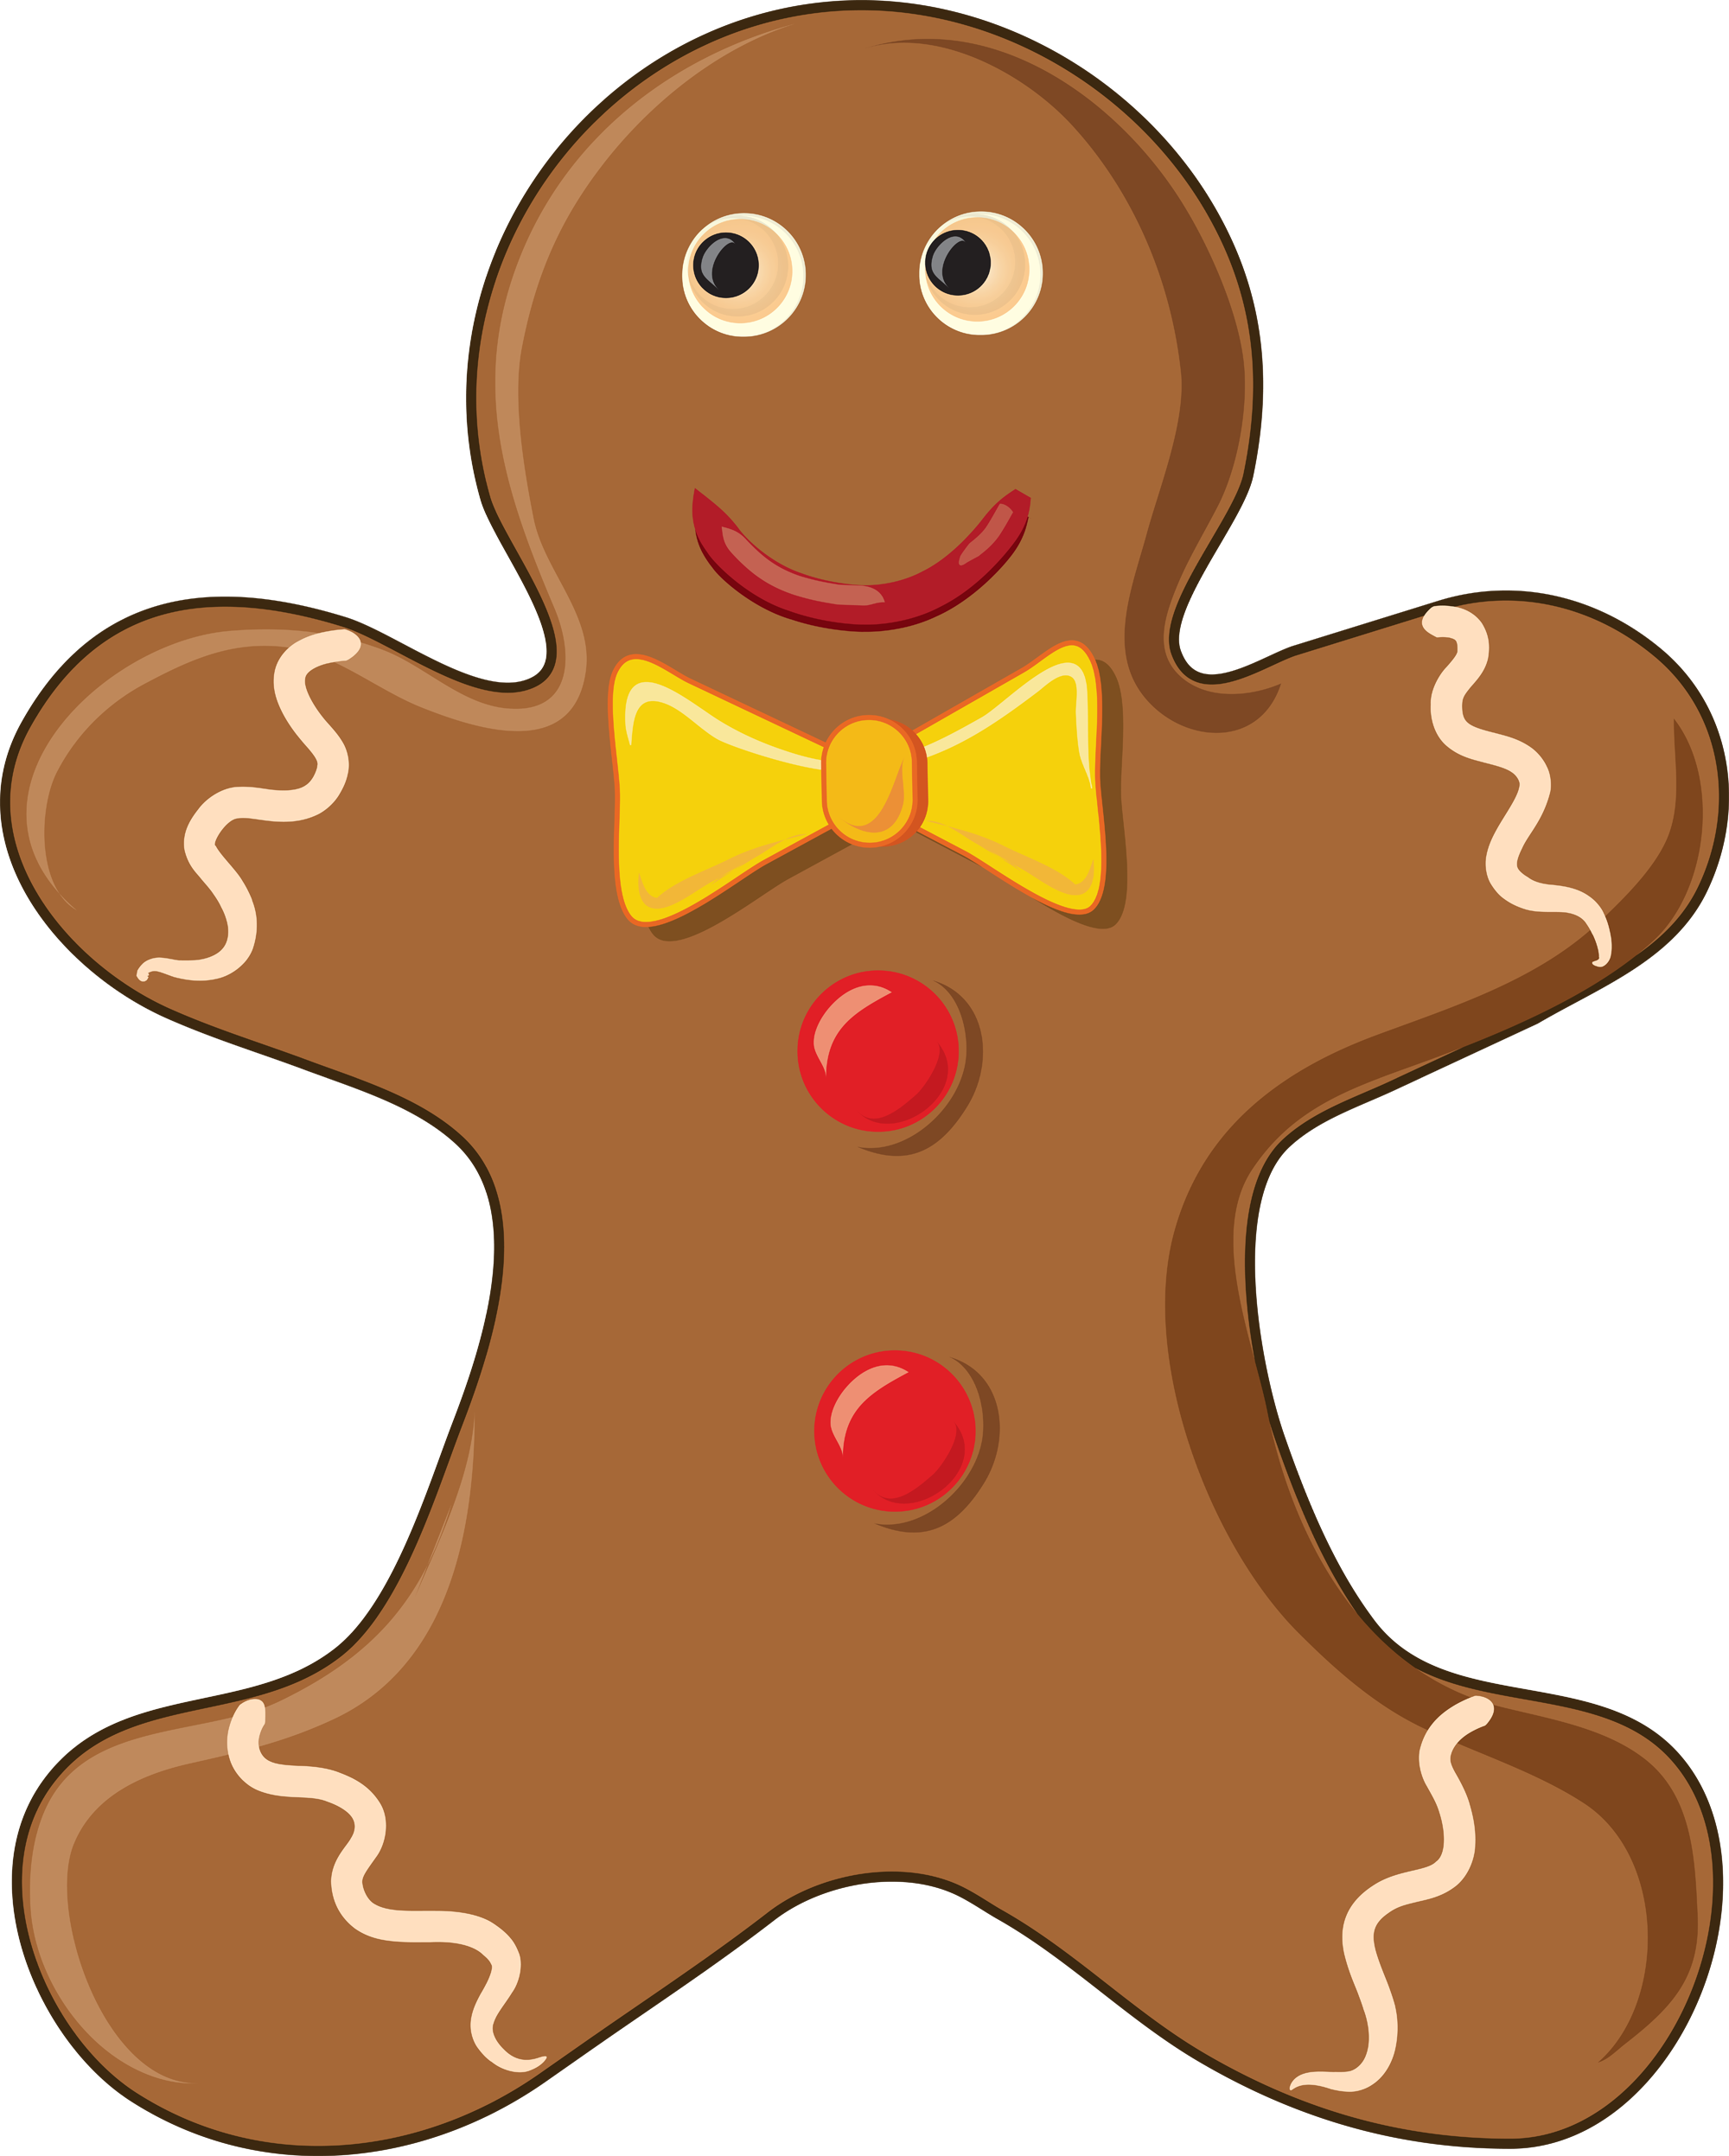 Gingerbread cookie clipart picture transparent Cookie Clipart Hot Cocoa Cookie - Cartoon Gingerbread Man Clipart ... picture transparent